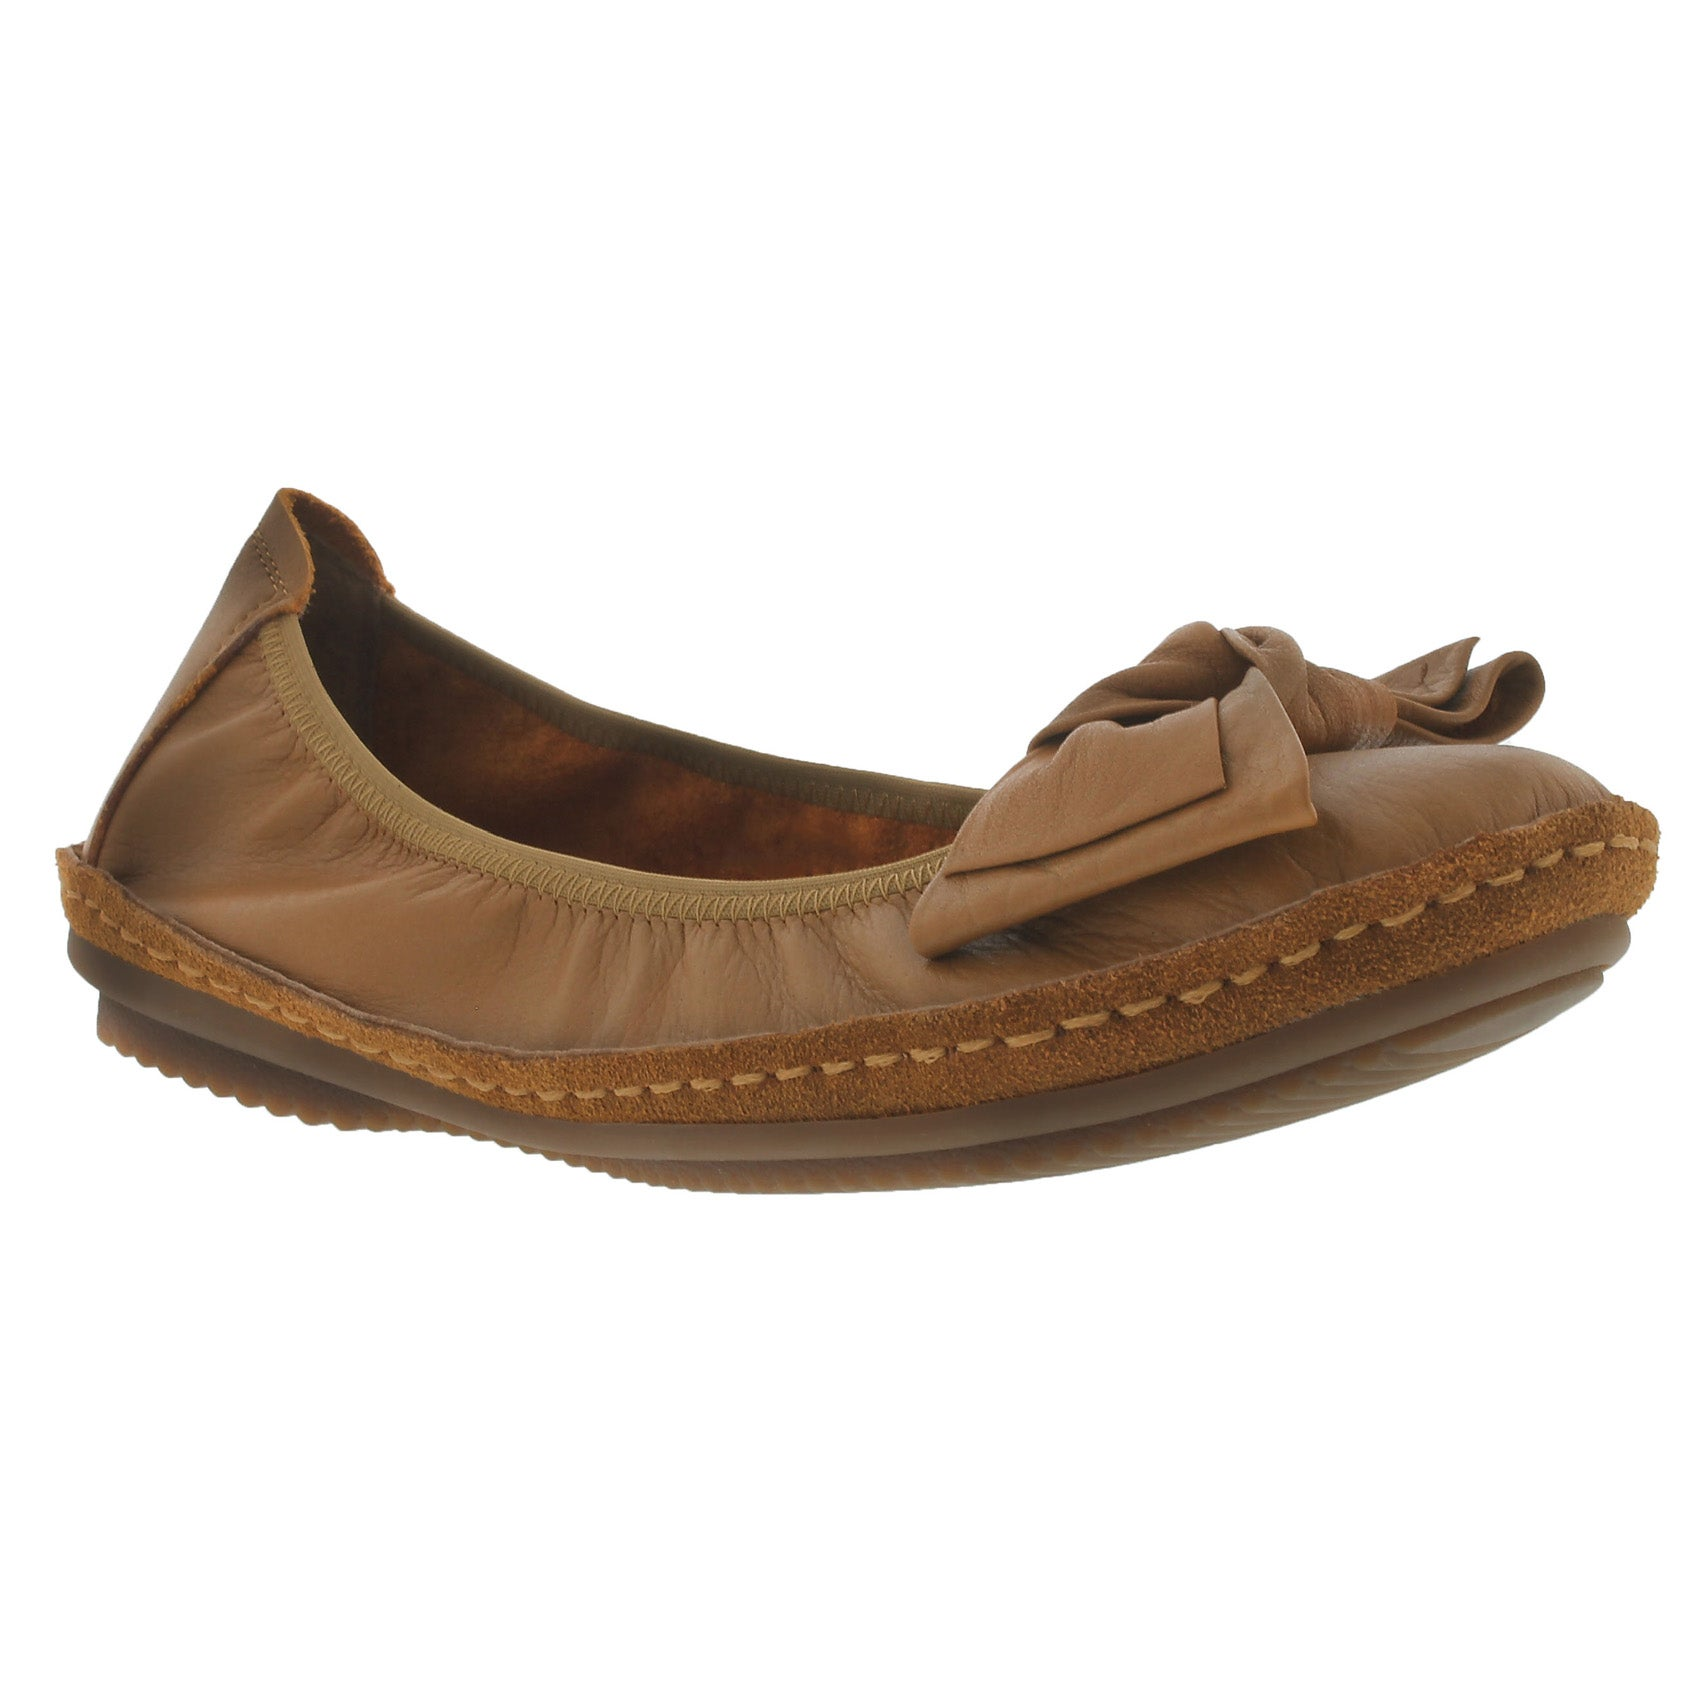 Women's PIPPA 01 cognac leather flats